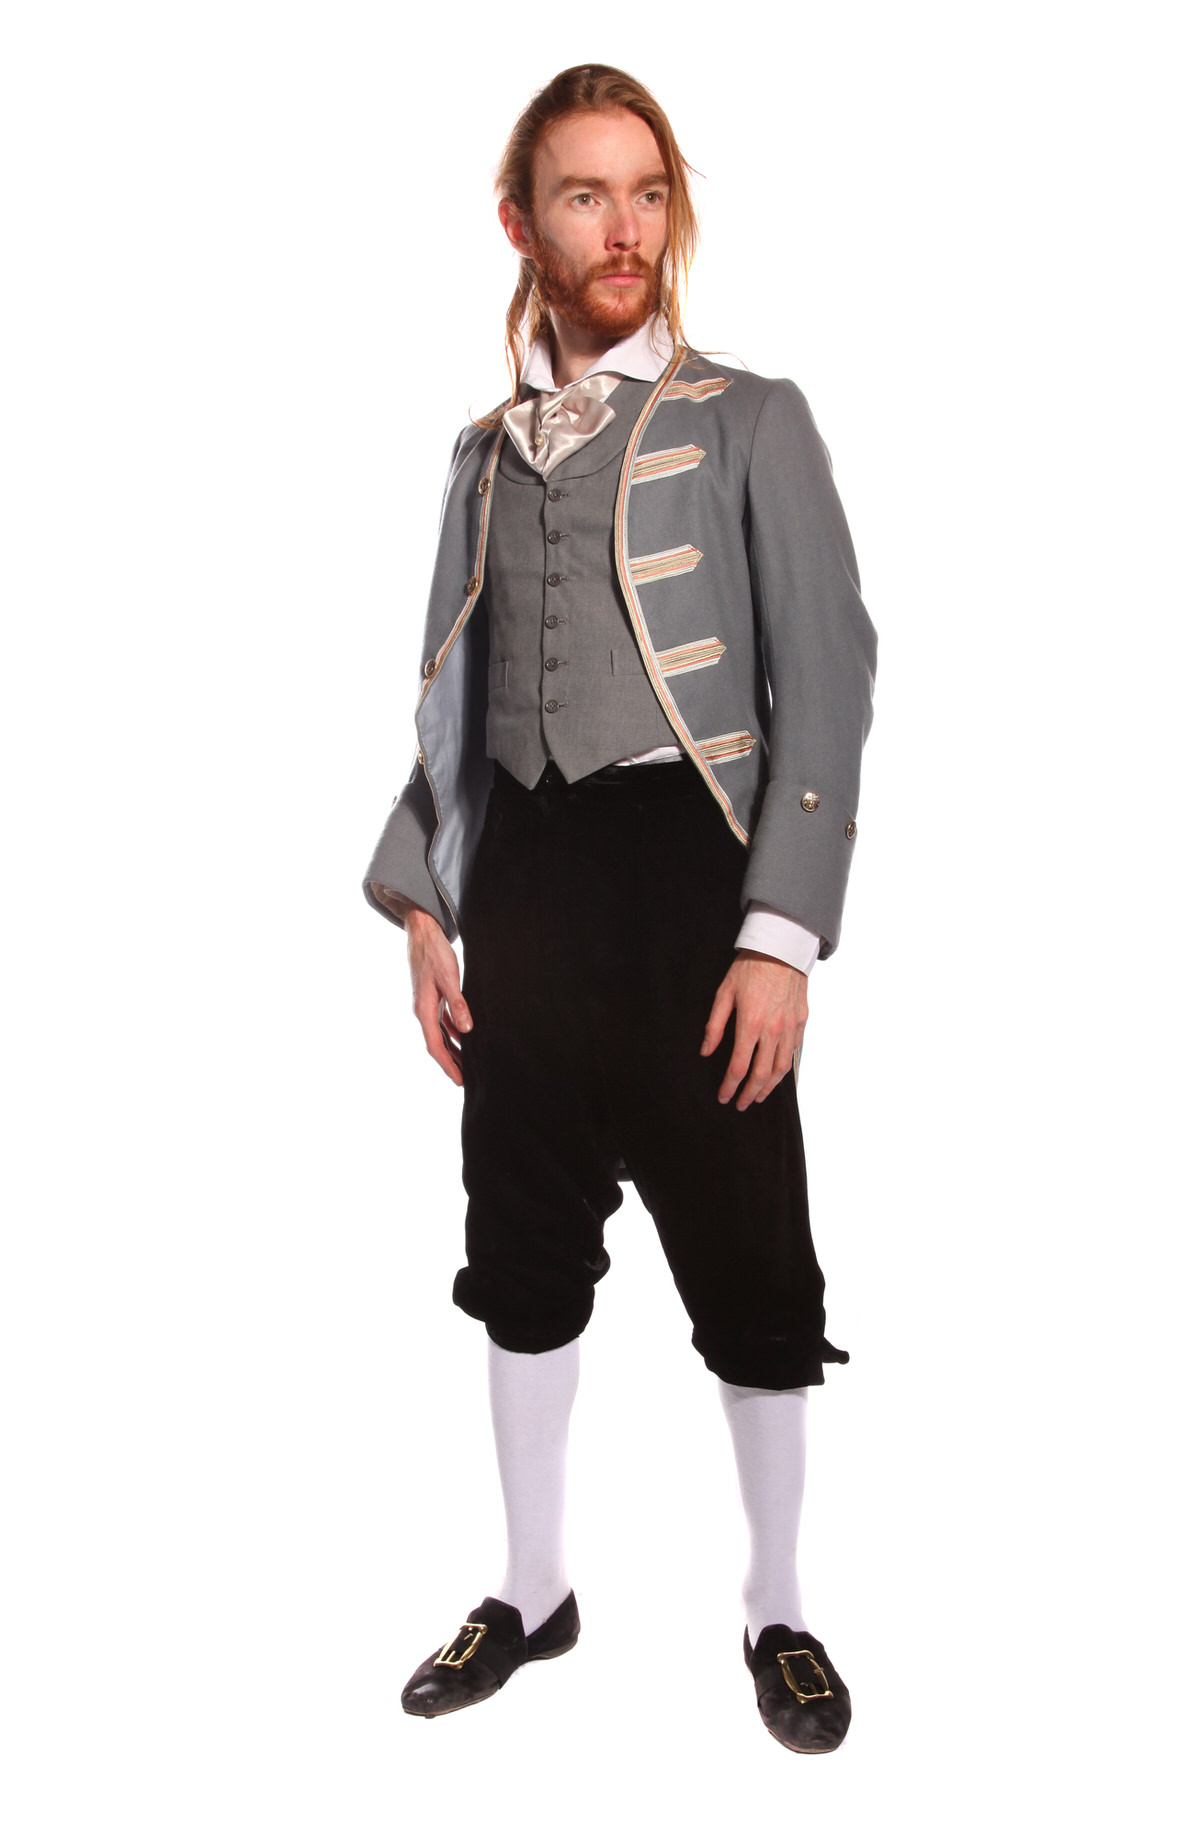 REGENCY GENT GREY COSTUME W VELVET BREECHES